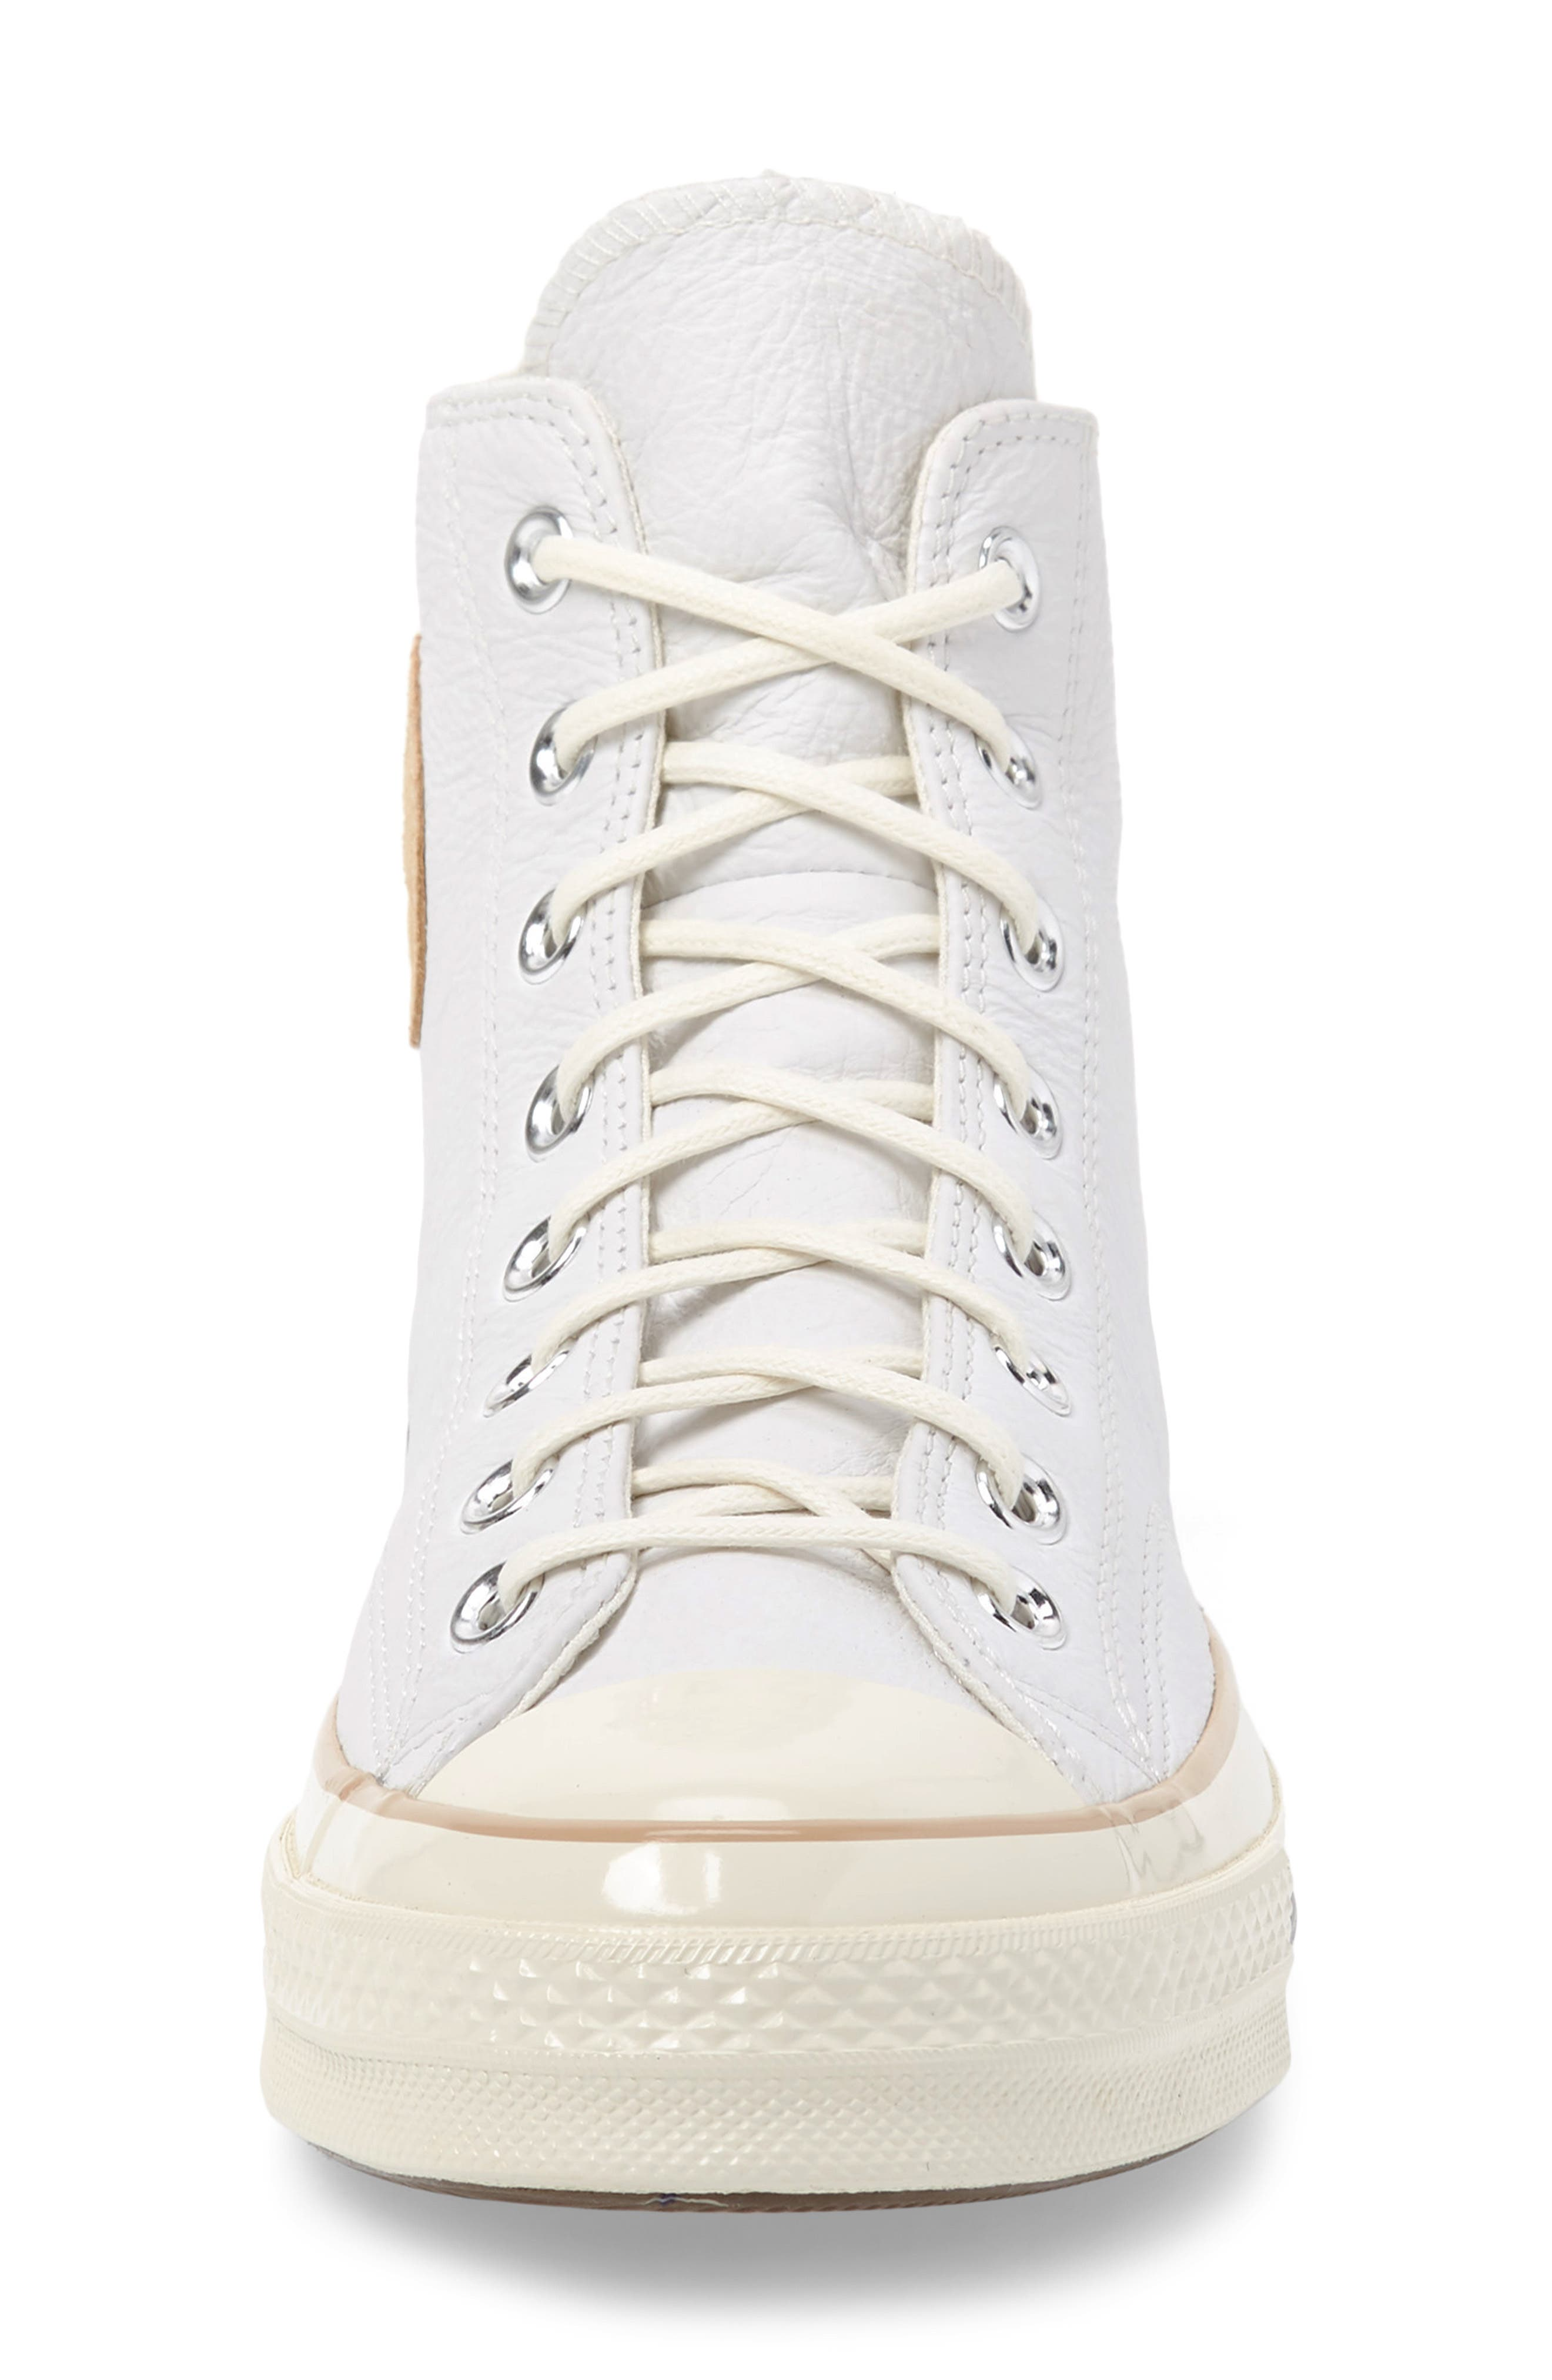 Chuck 70 Boot Leather High Top Sneaker,                             Alternate thumbnail 4, color,                             WHITE/ LIGHT FAWN/ EGRET